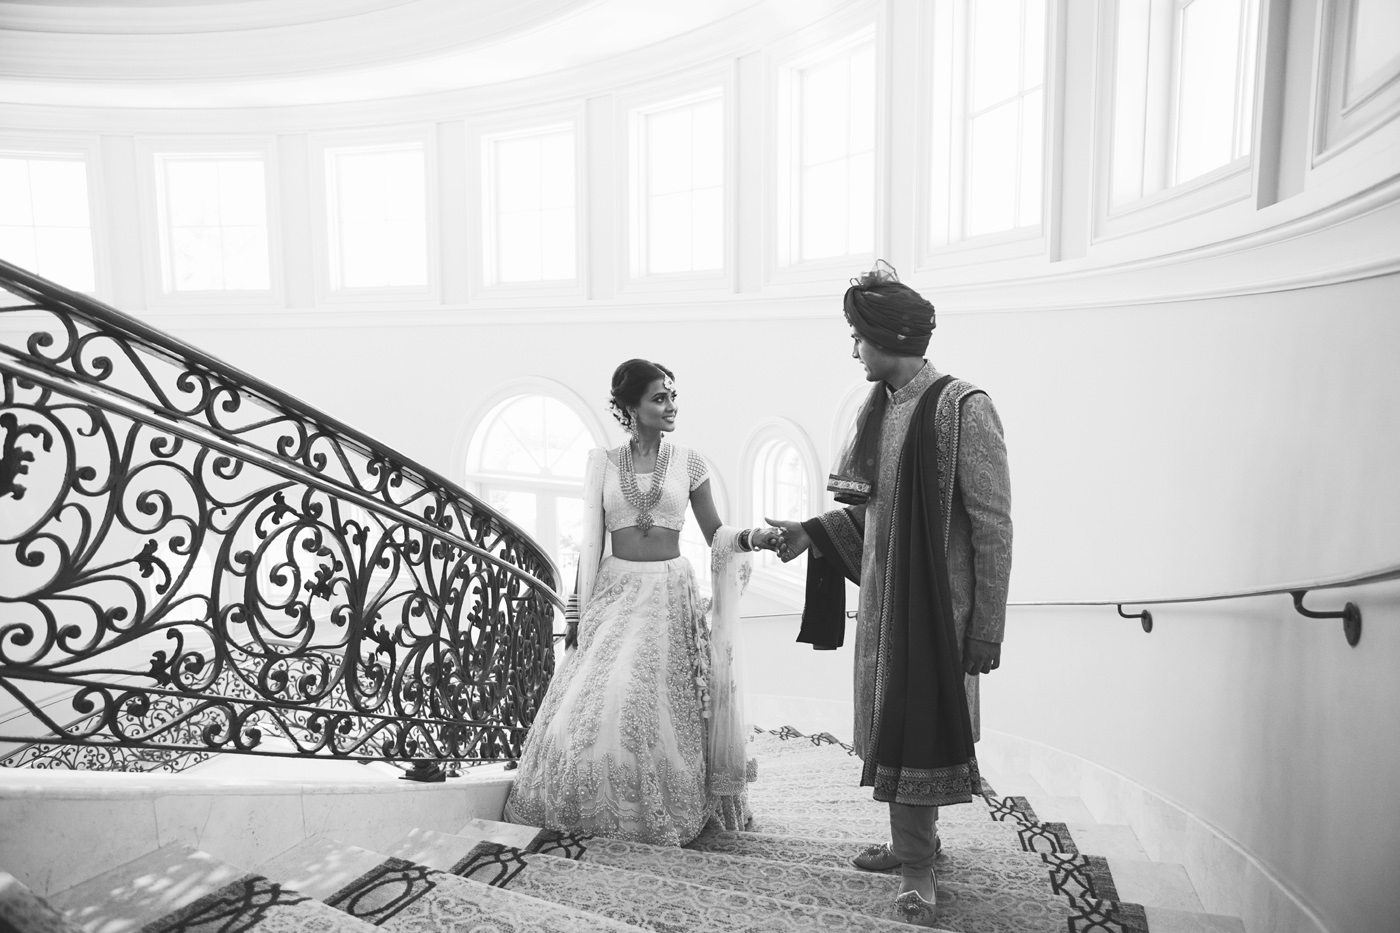 24DukePhotography_DukeImages_weddings_IMG_0401.jpg